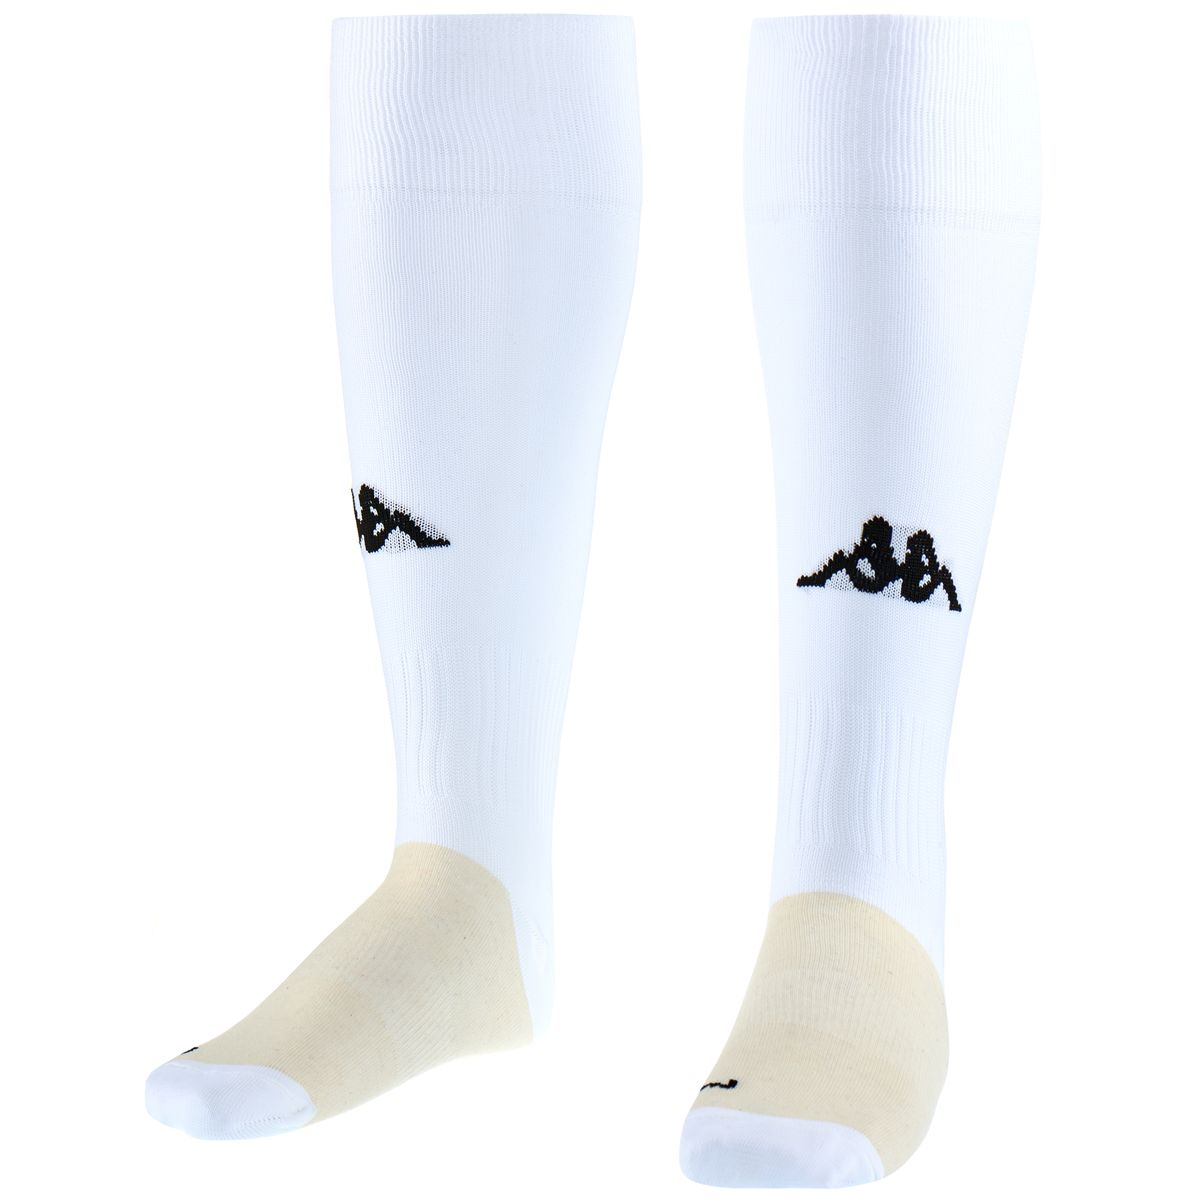 Kappa Socks KAPPA4SOCCER WULGAR 1PACK Man Soccer sport Knee High